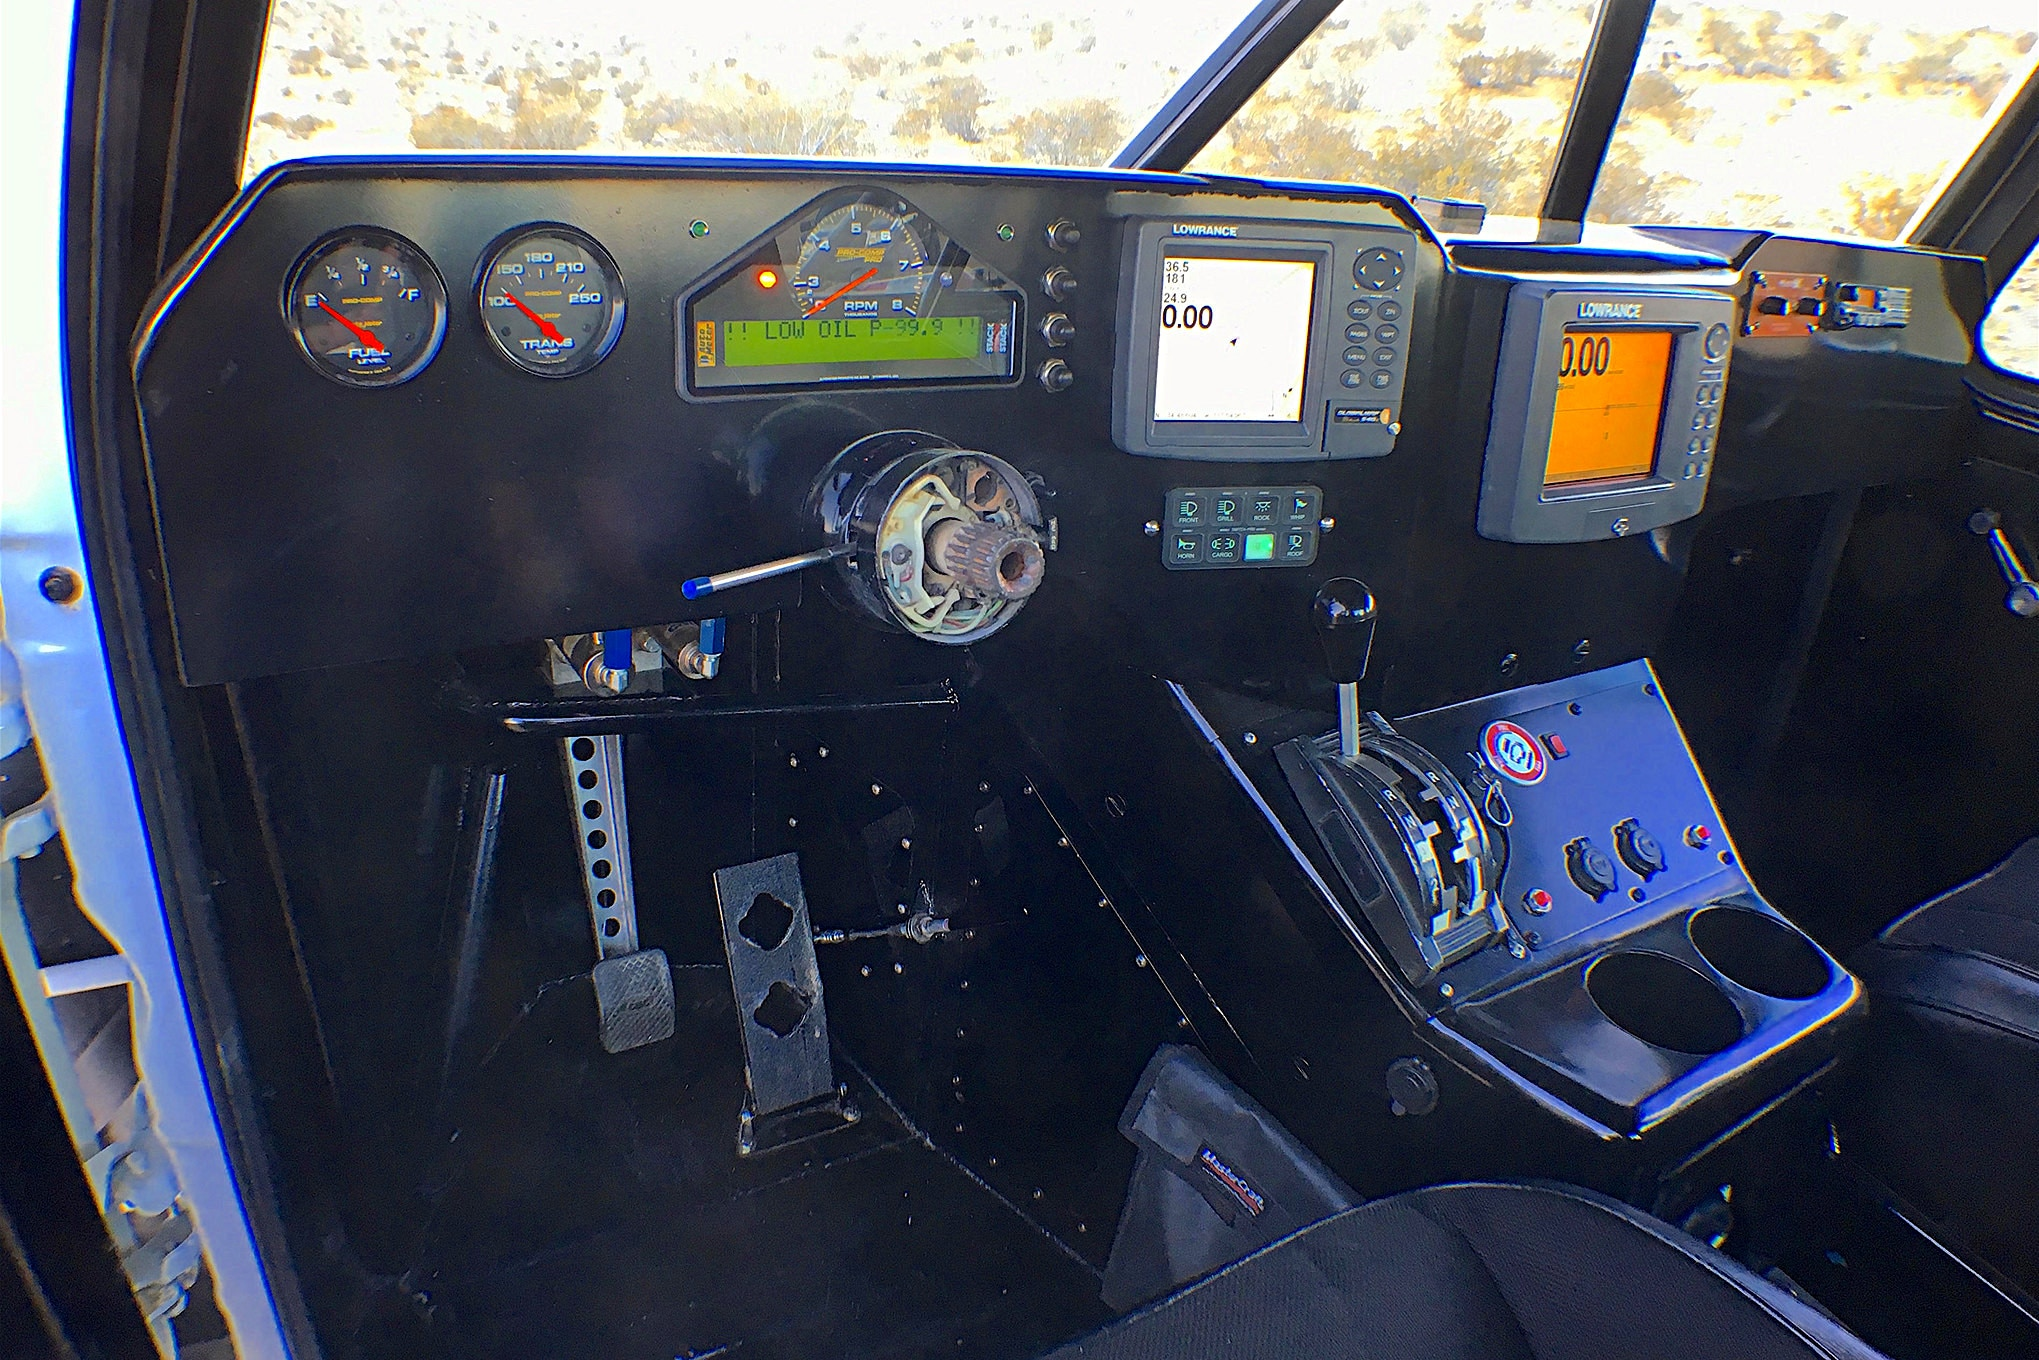 An Auto Meter dash pack, Lowrance GPS units, and an Icom radio/Racer X intercom is situated in the handmade dash.